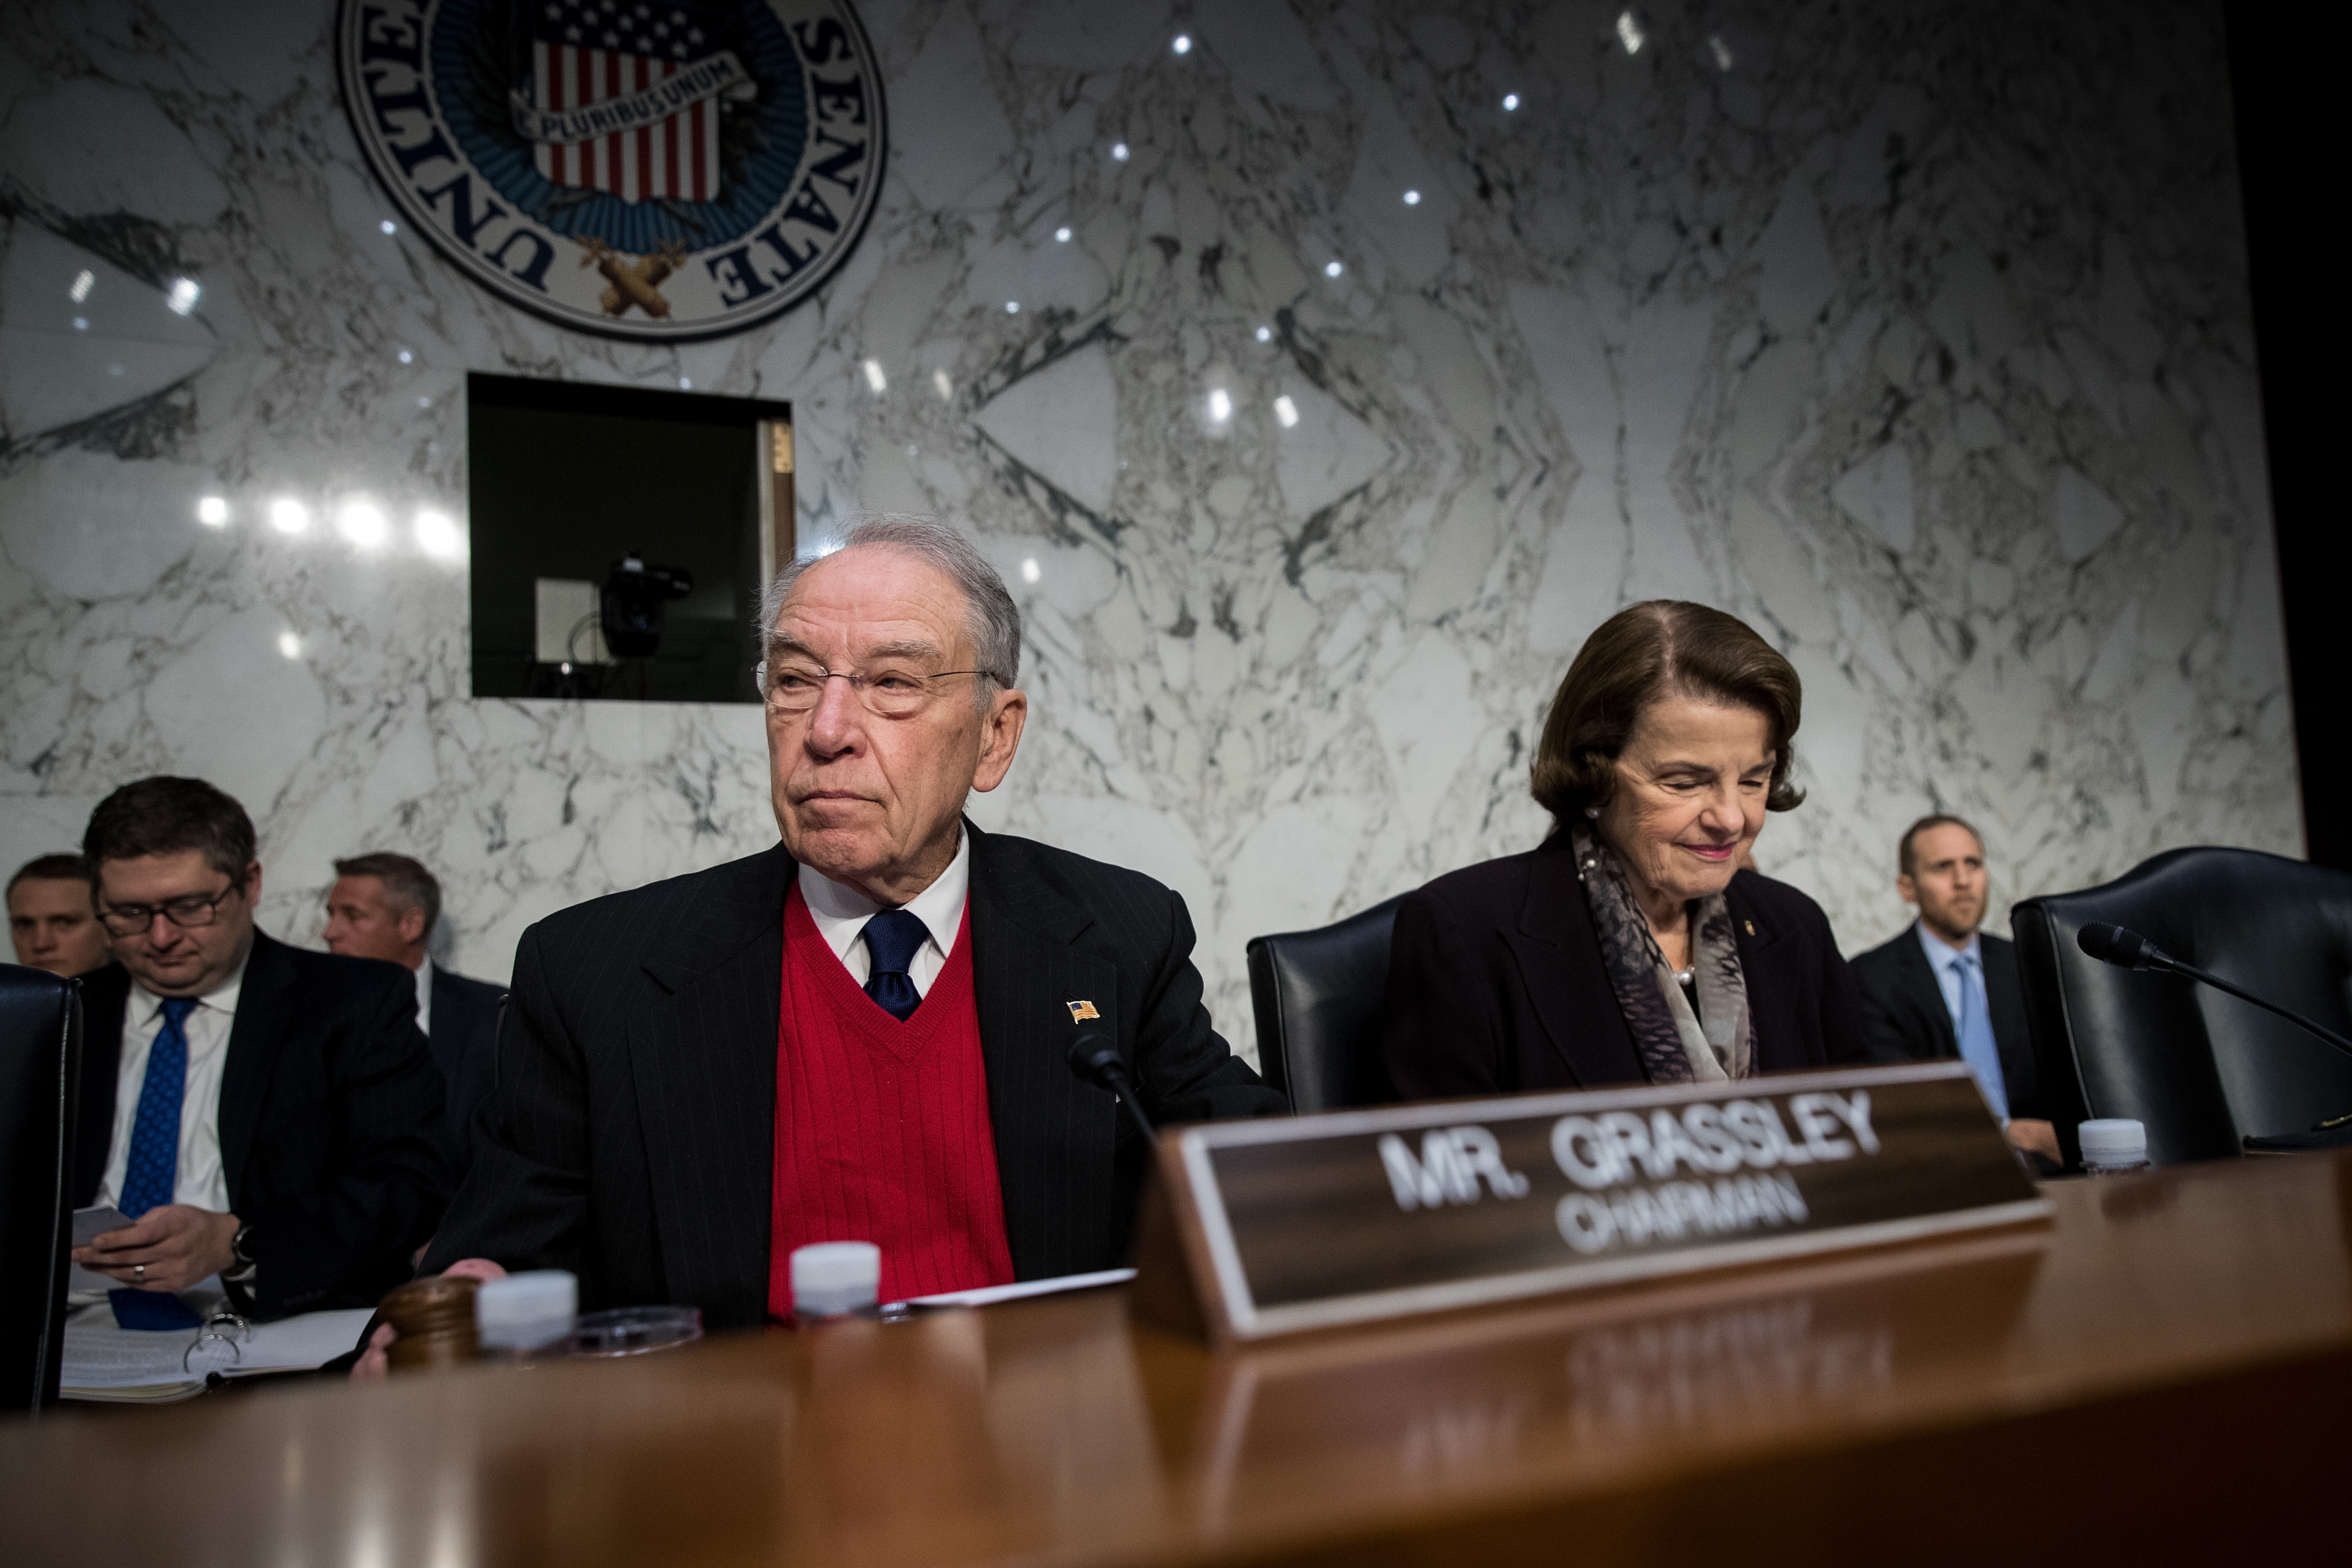 Committee chairman Sen. Chuck Grassley (R-IA) and ranking member Sen. Dianne Feinstein (D-CA) arrive for a Senate Judiciary Committee hearing on Capitol Hill, December 6, 2017 in Washington, DC.